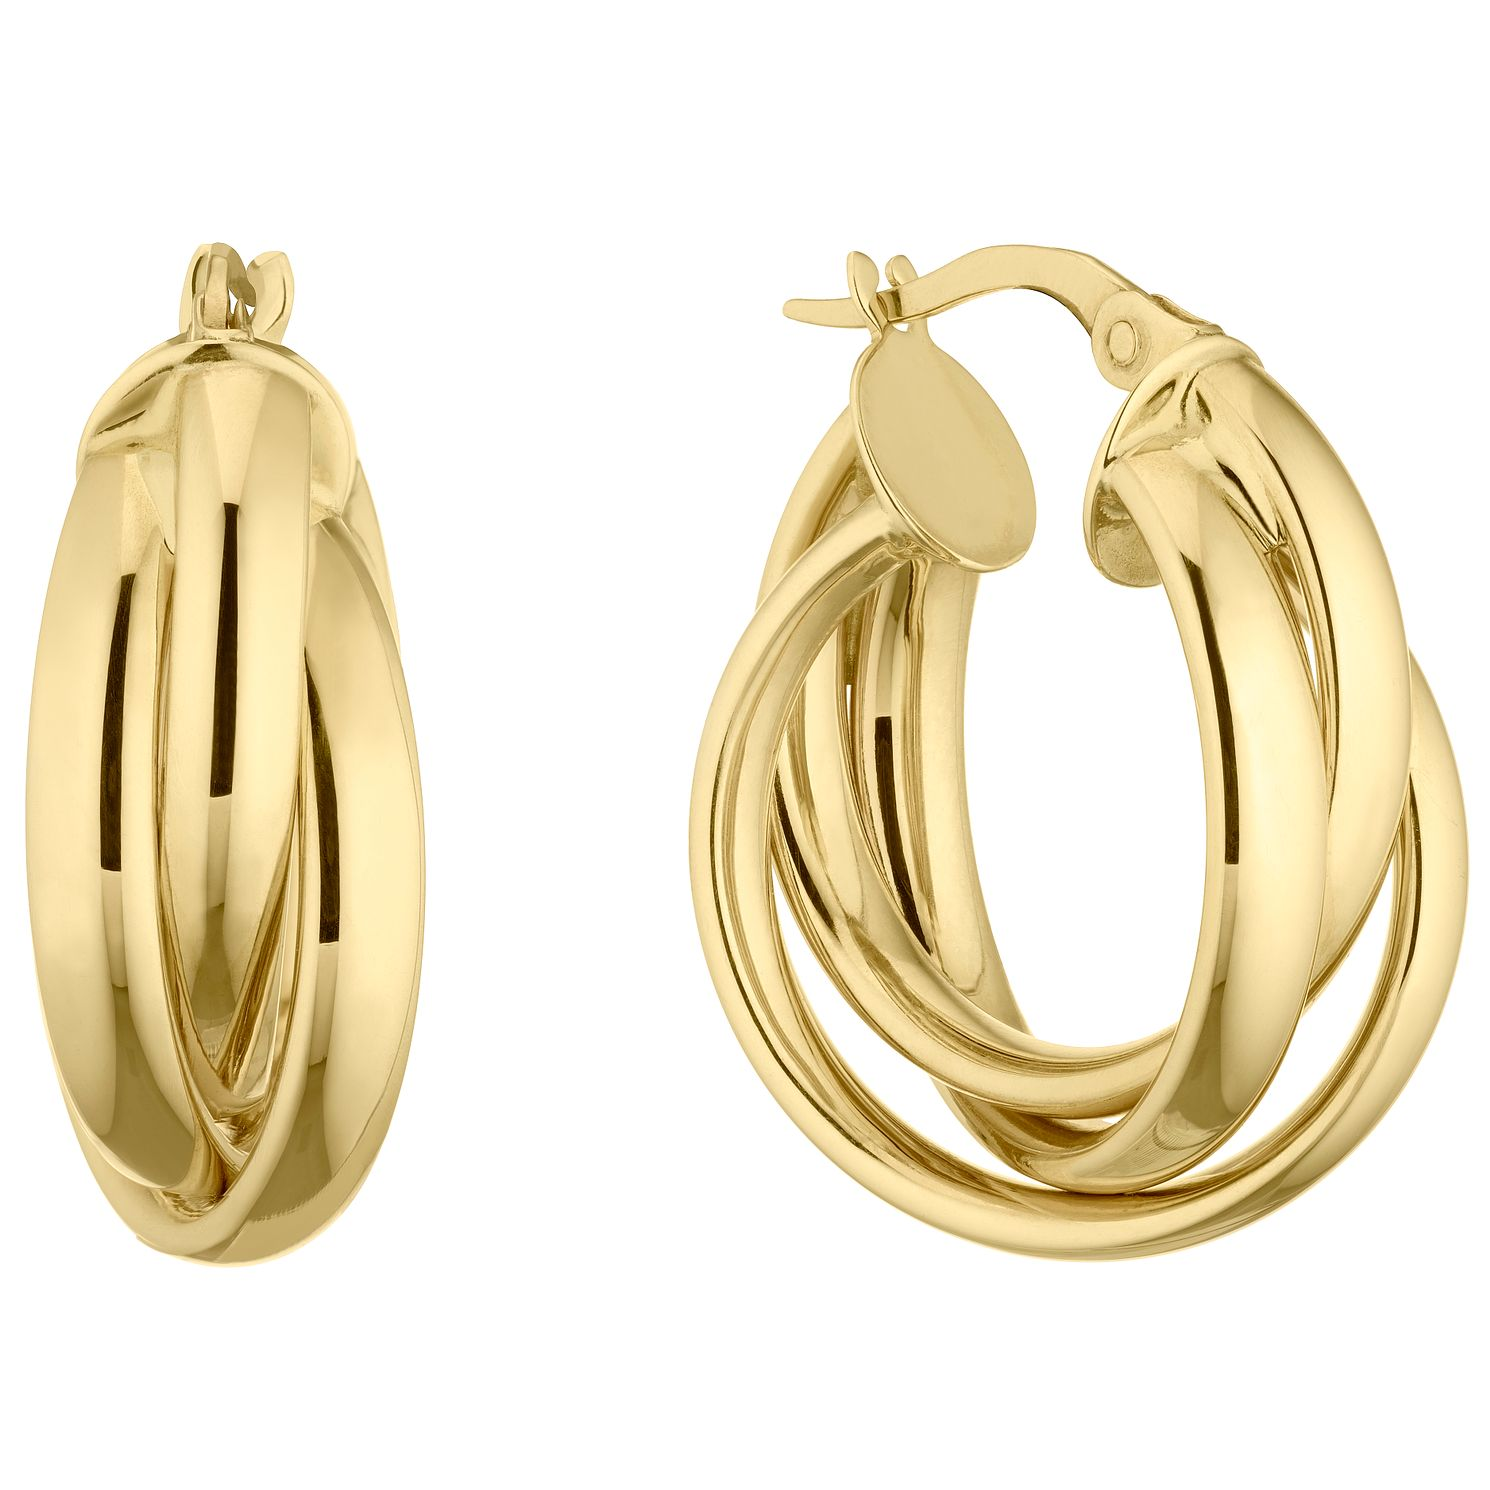 9ct Yellow Gold Triple Twist Hoop Earrings - Product number 5241367